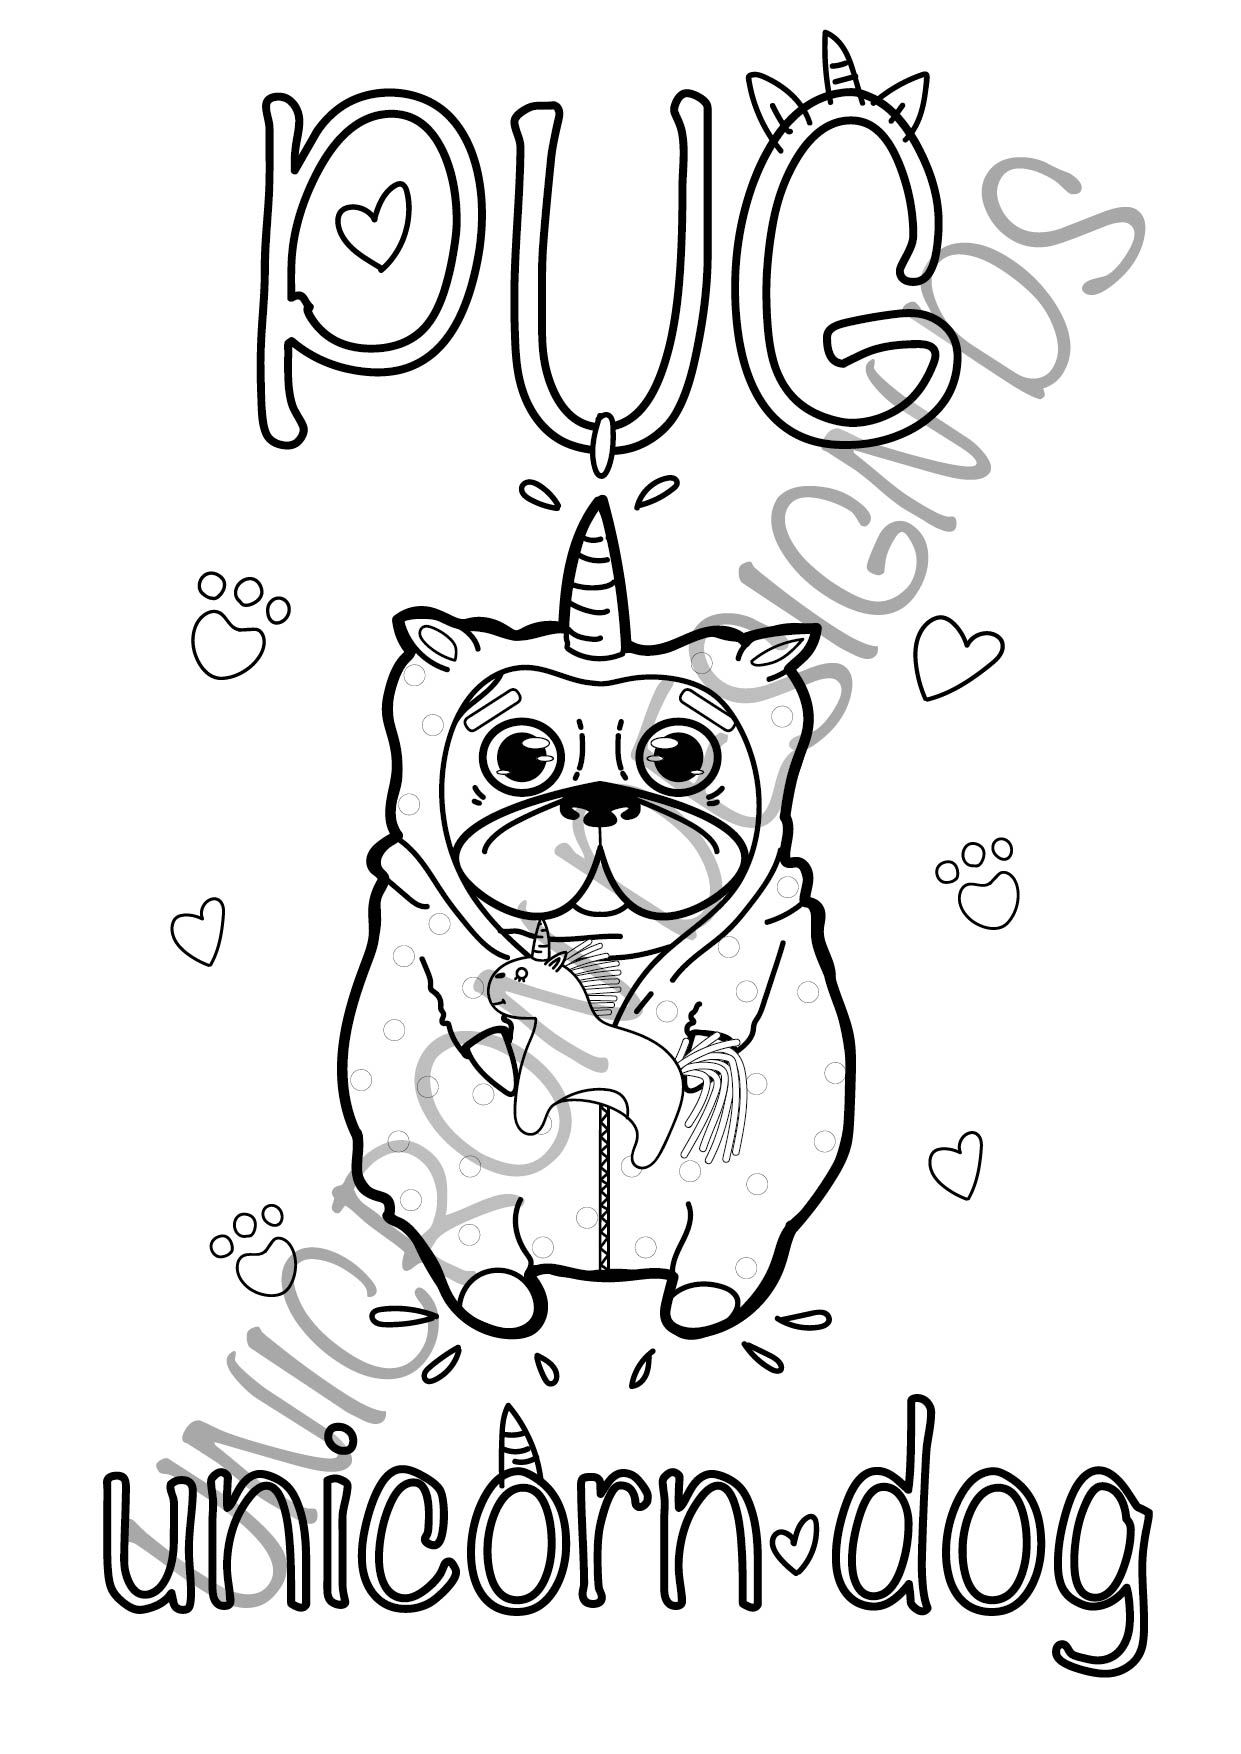 Printable Cute Pug Dog Animals Illustration Coloring Pages For Etsy Baby Coloring Pages Puppy Coloring Pages Unicorn Coloring Pages